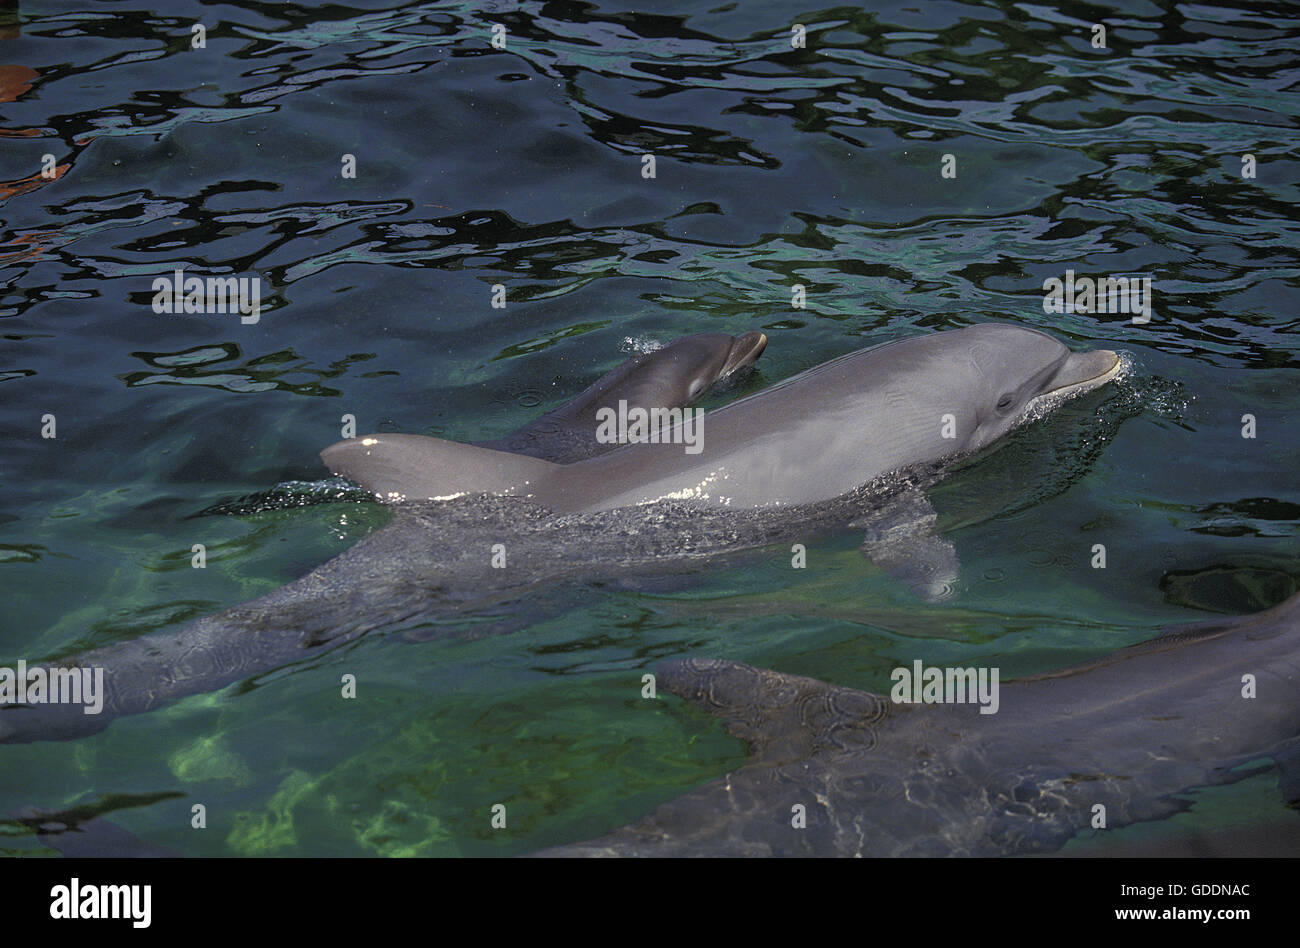 Bottlenose Dolphin, tursiops truncatus, Mother and Calf - Stock Image